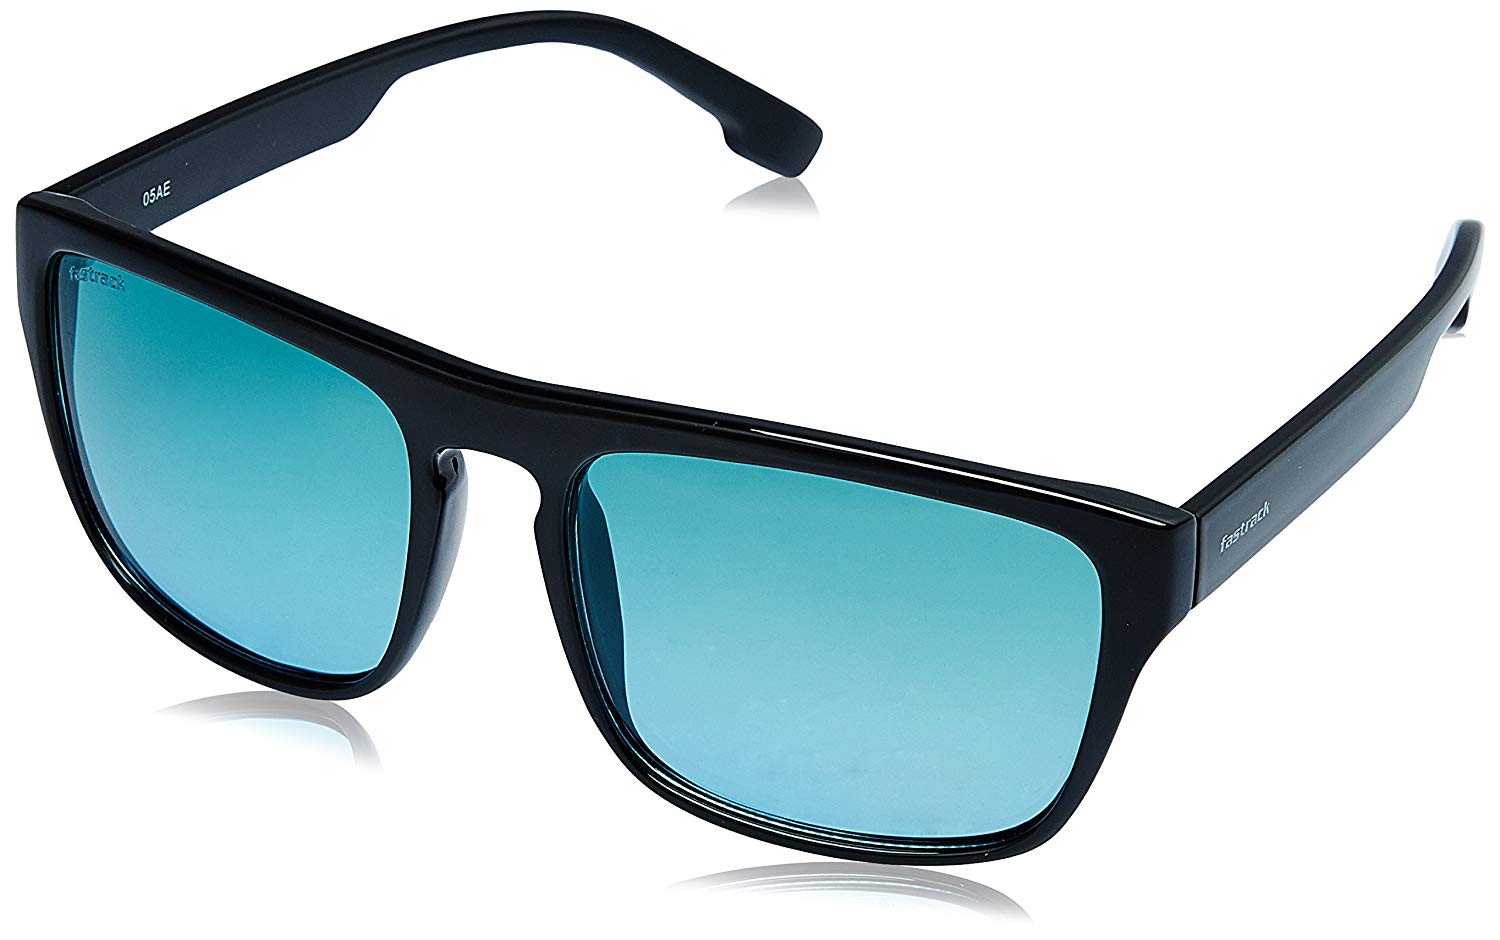 Fastrack sunglass-P264BU1(Size-56)Blue get best offers deals free and coupons online at buythevalue.in